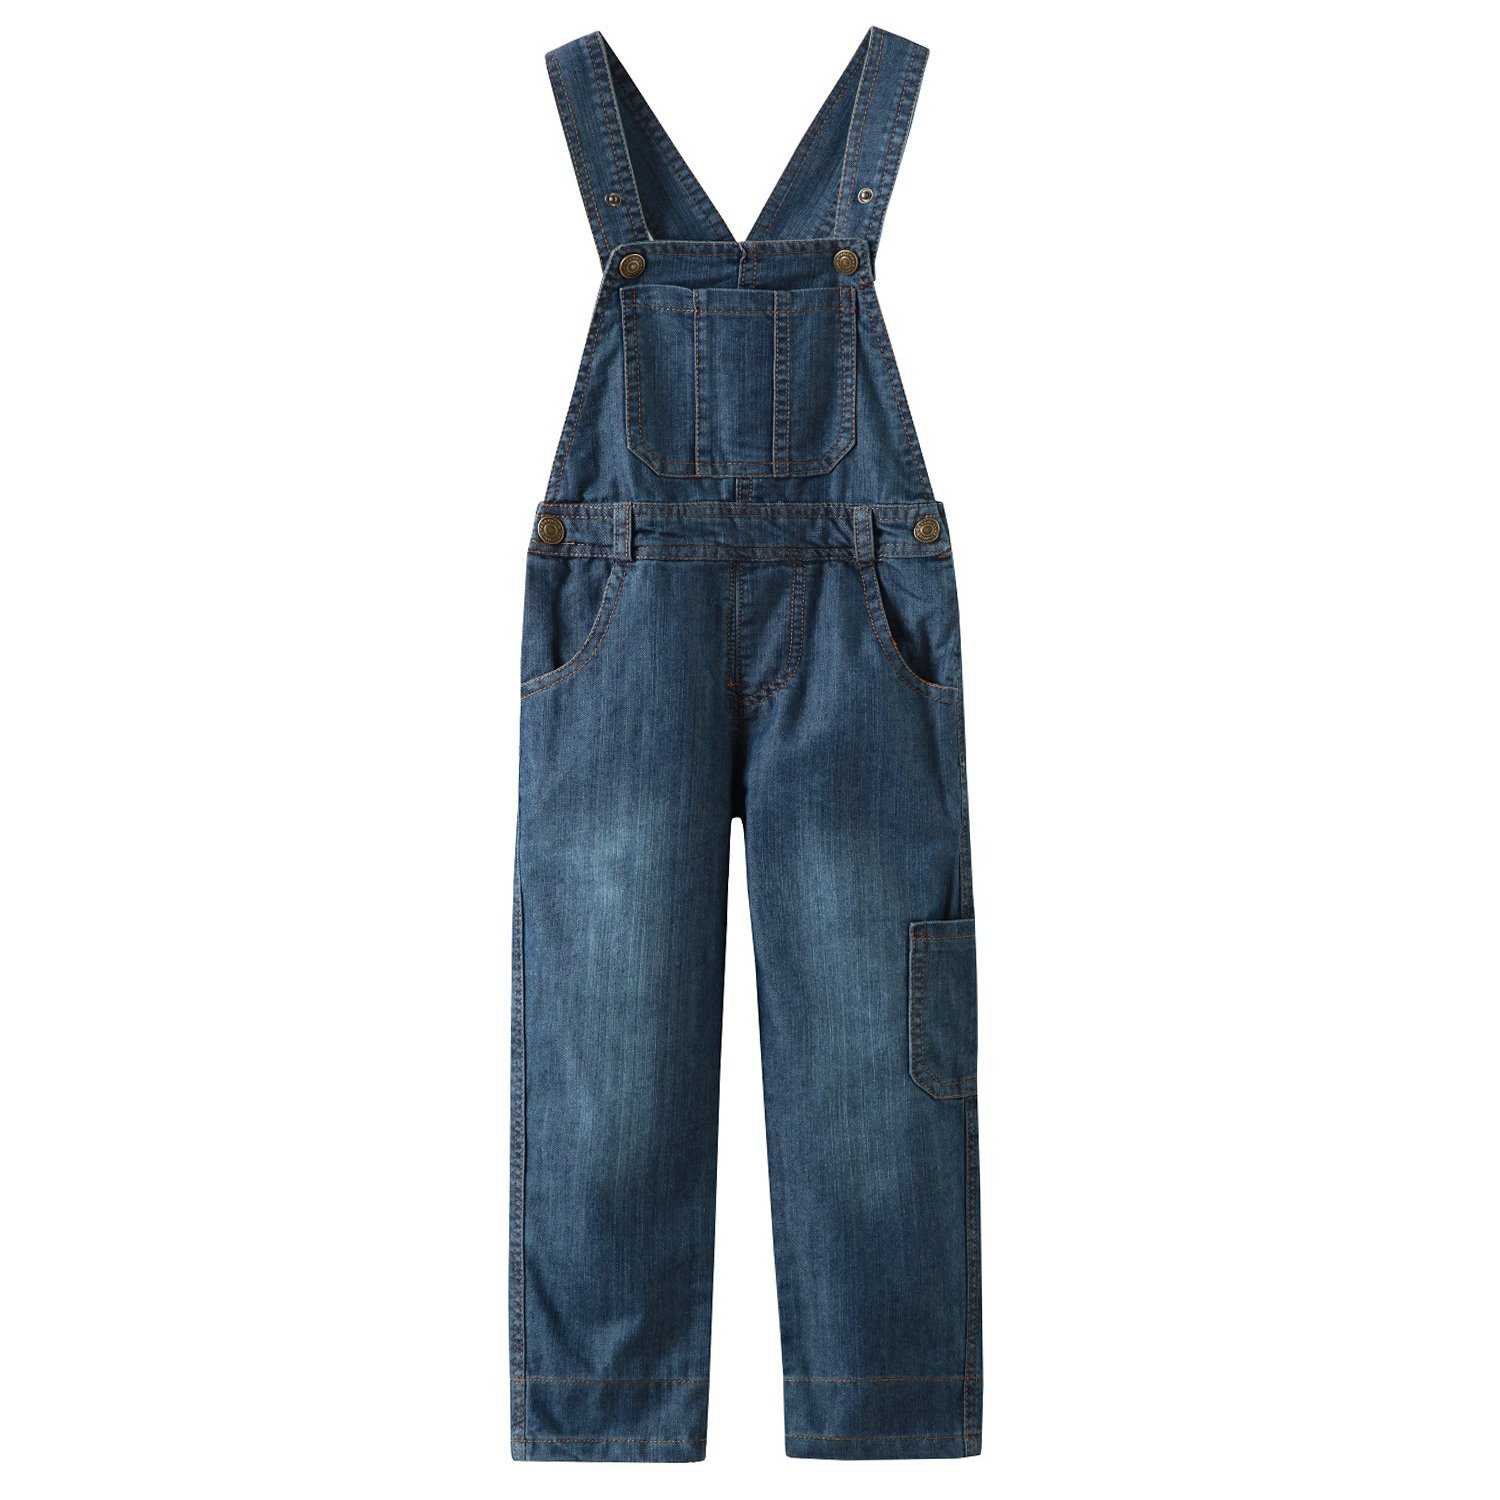 Grandwish Kids Blue Dungarees Boys Denim Bib Overalls 3 Years - 10 Years